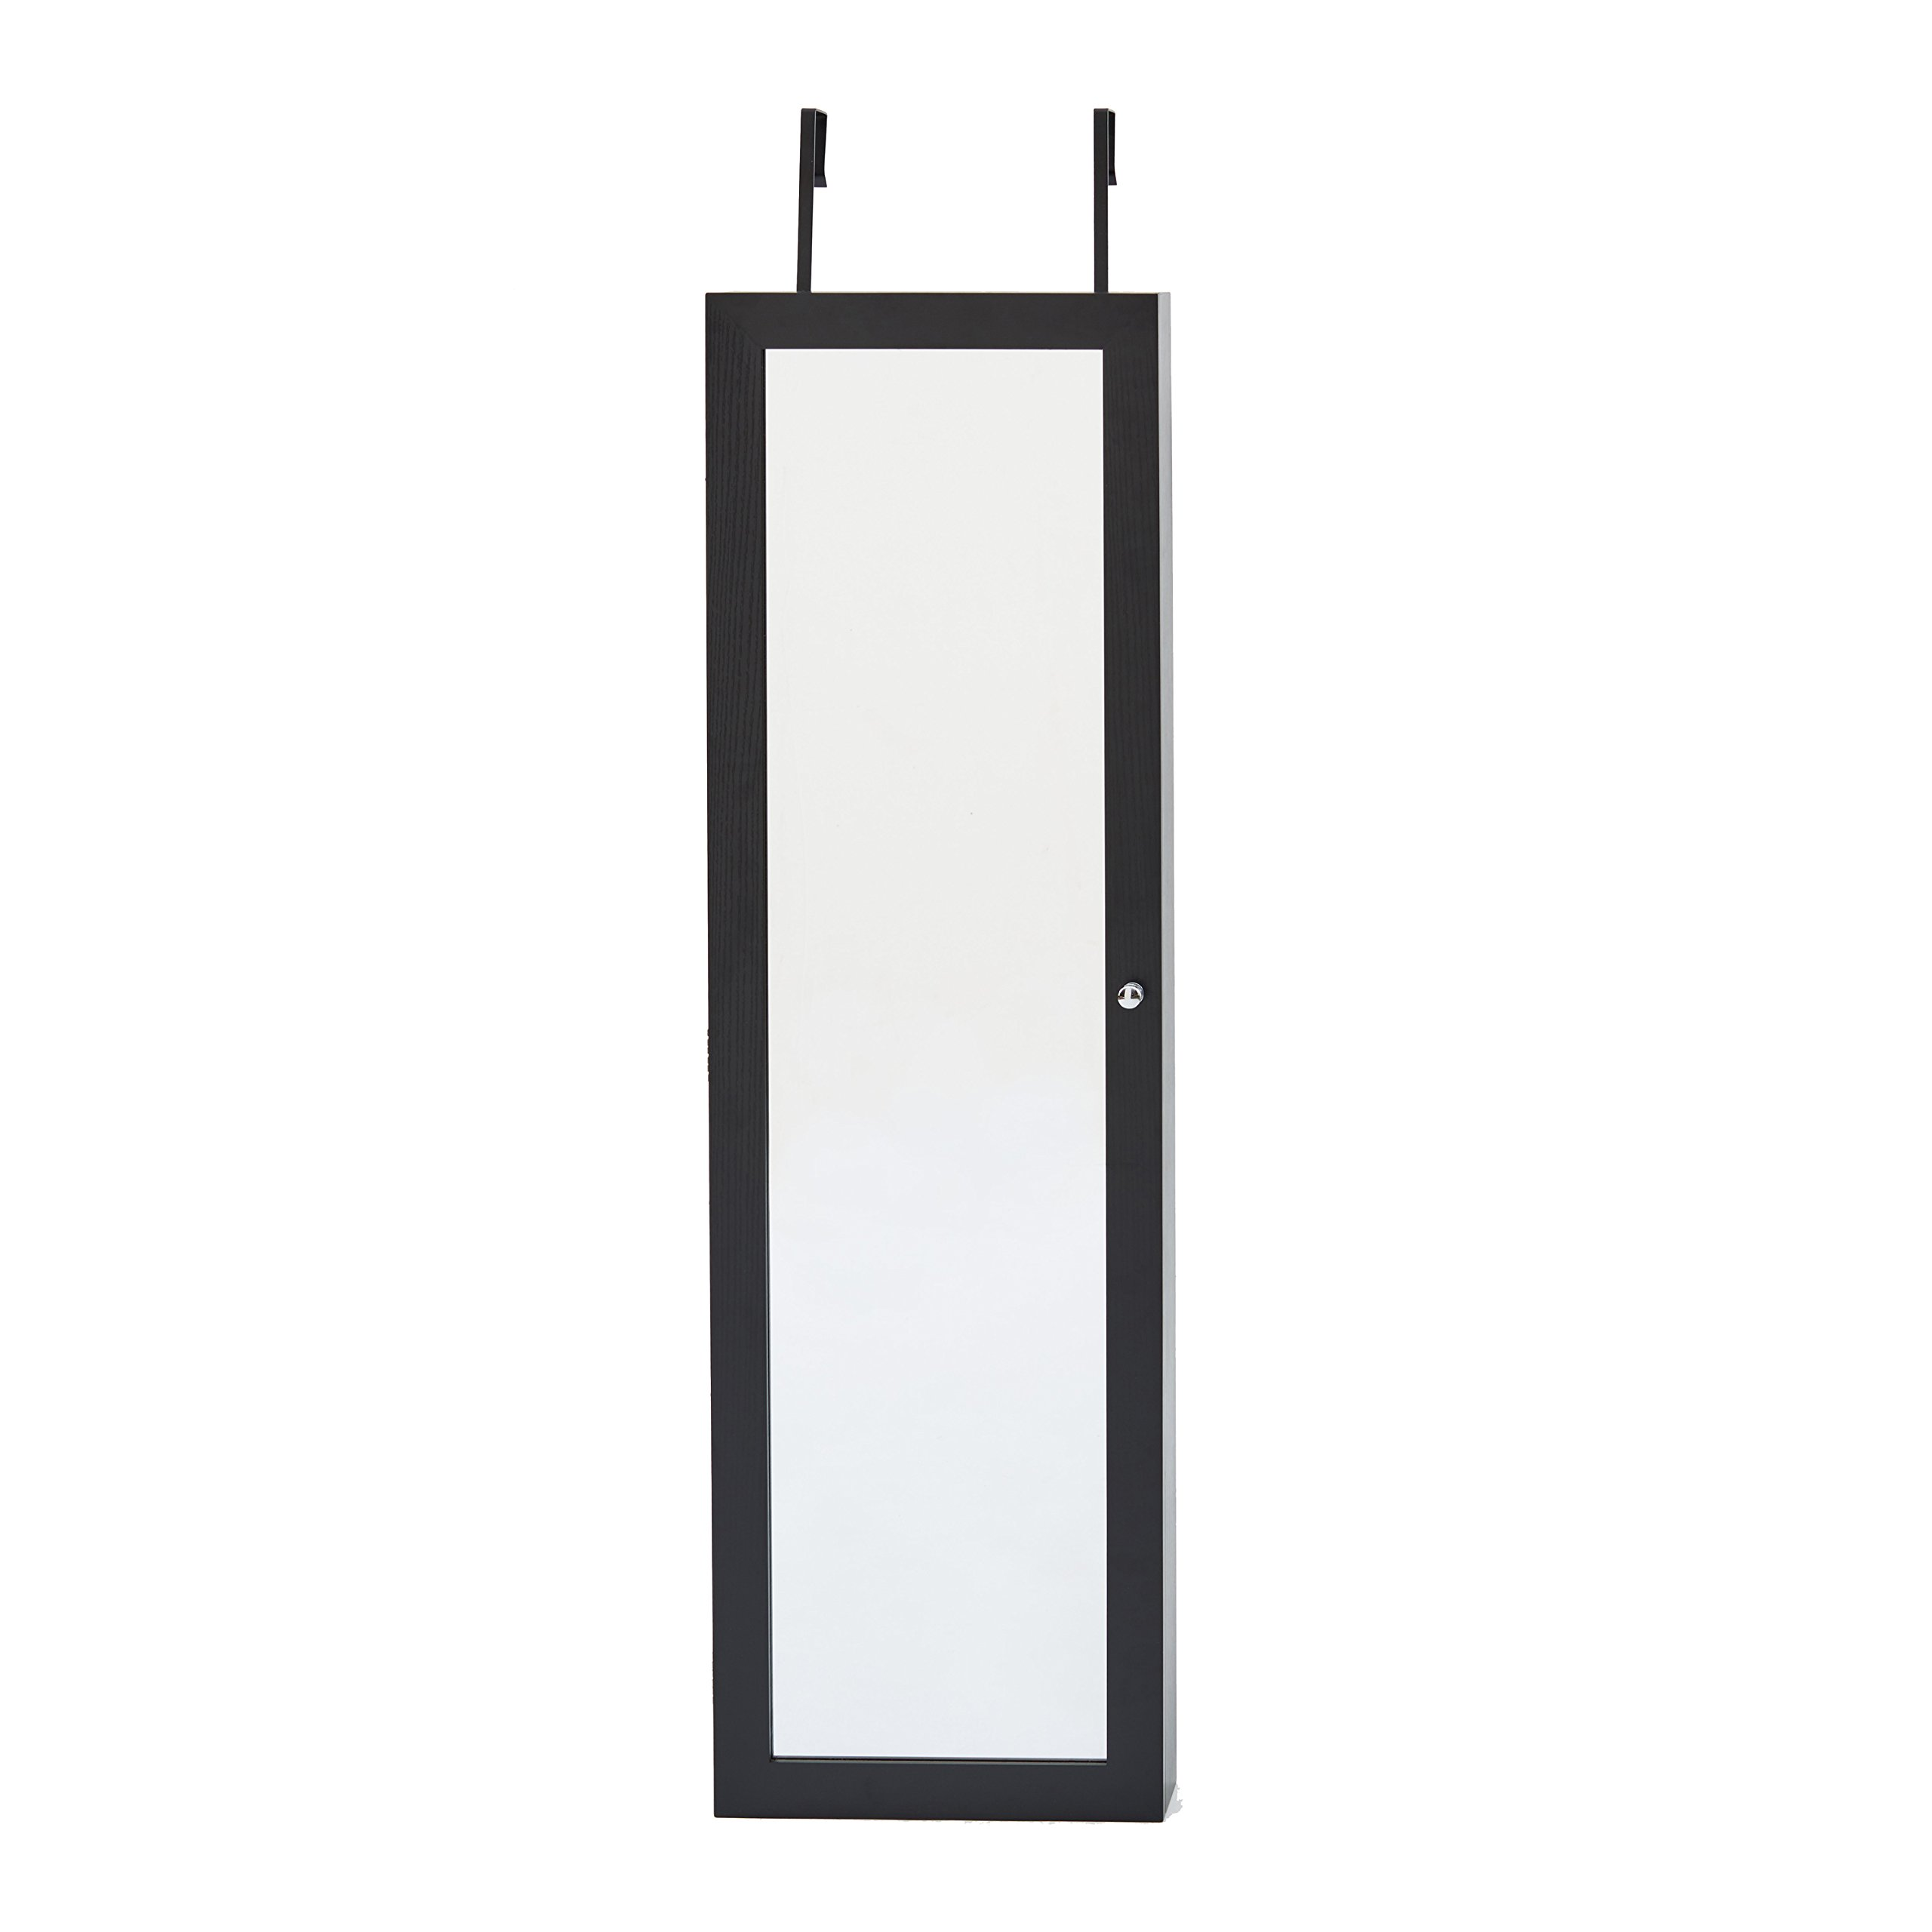 InnerSpace Luxury Products Mirrored Jewelry Armoire, Black